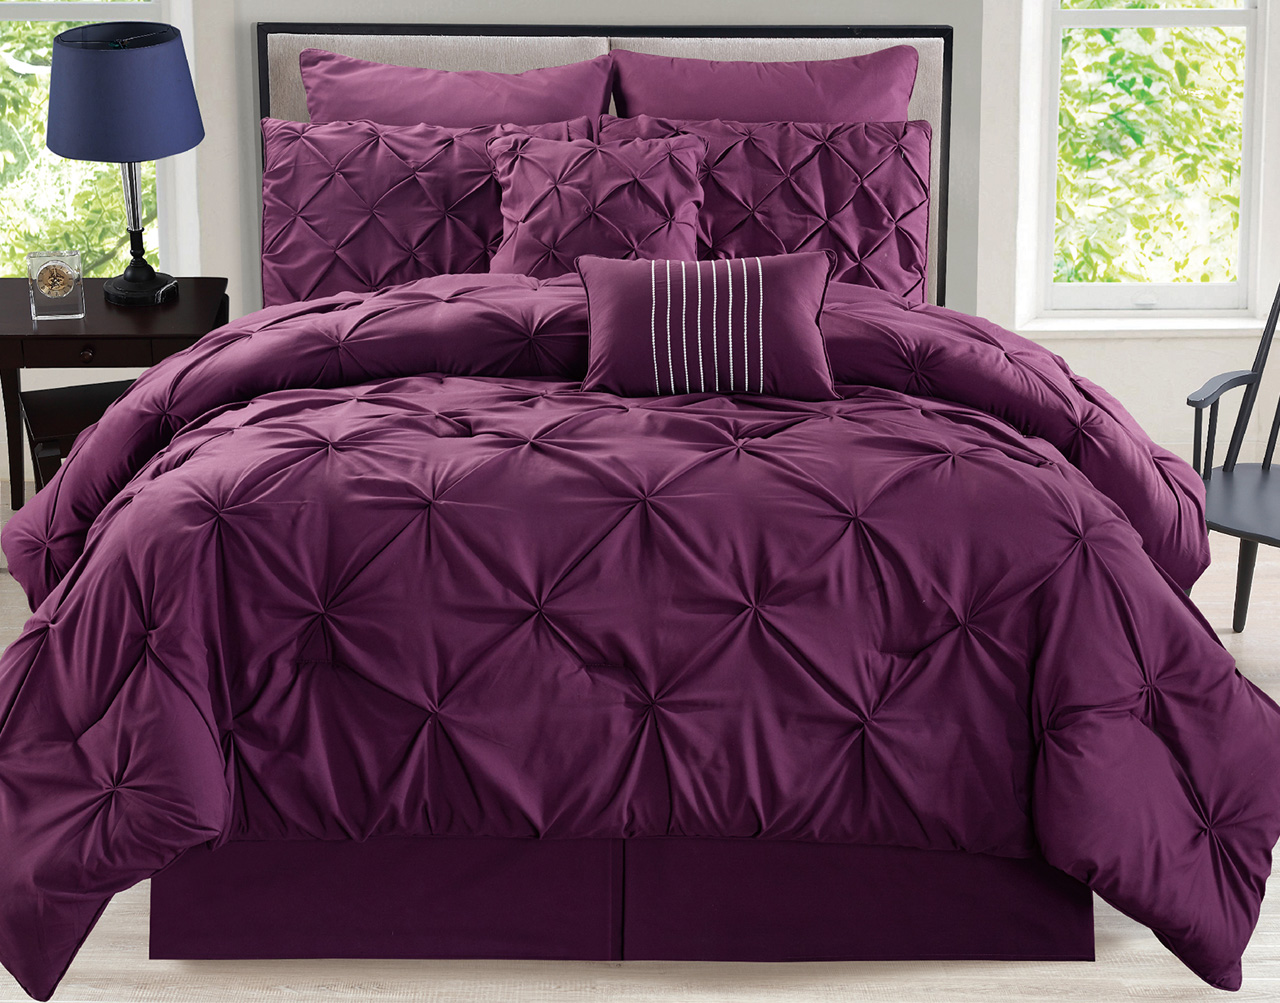 Kinglinen 12 Piece Rochelle Pinched Pleat Plum Bed in a B...